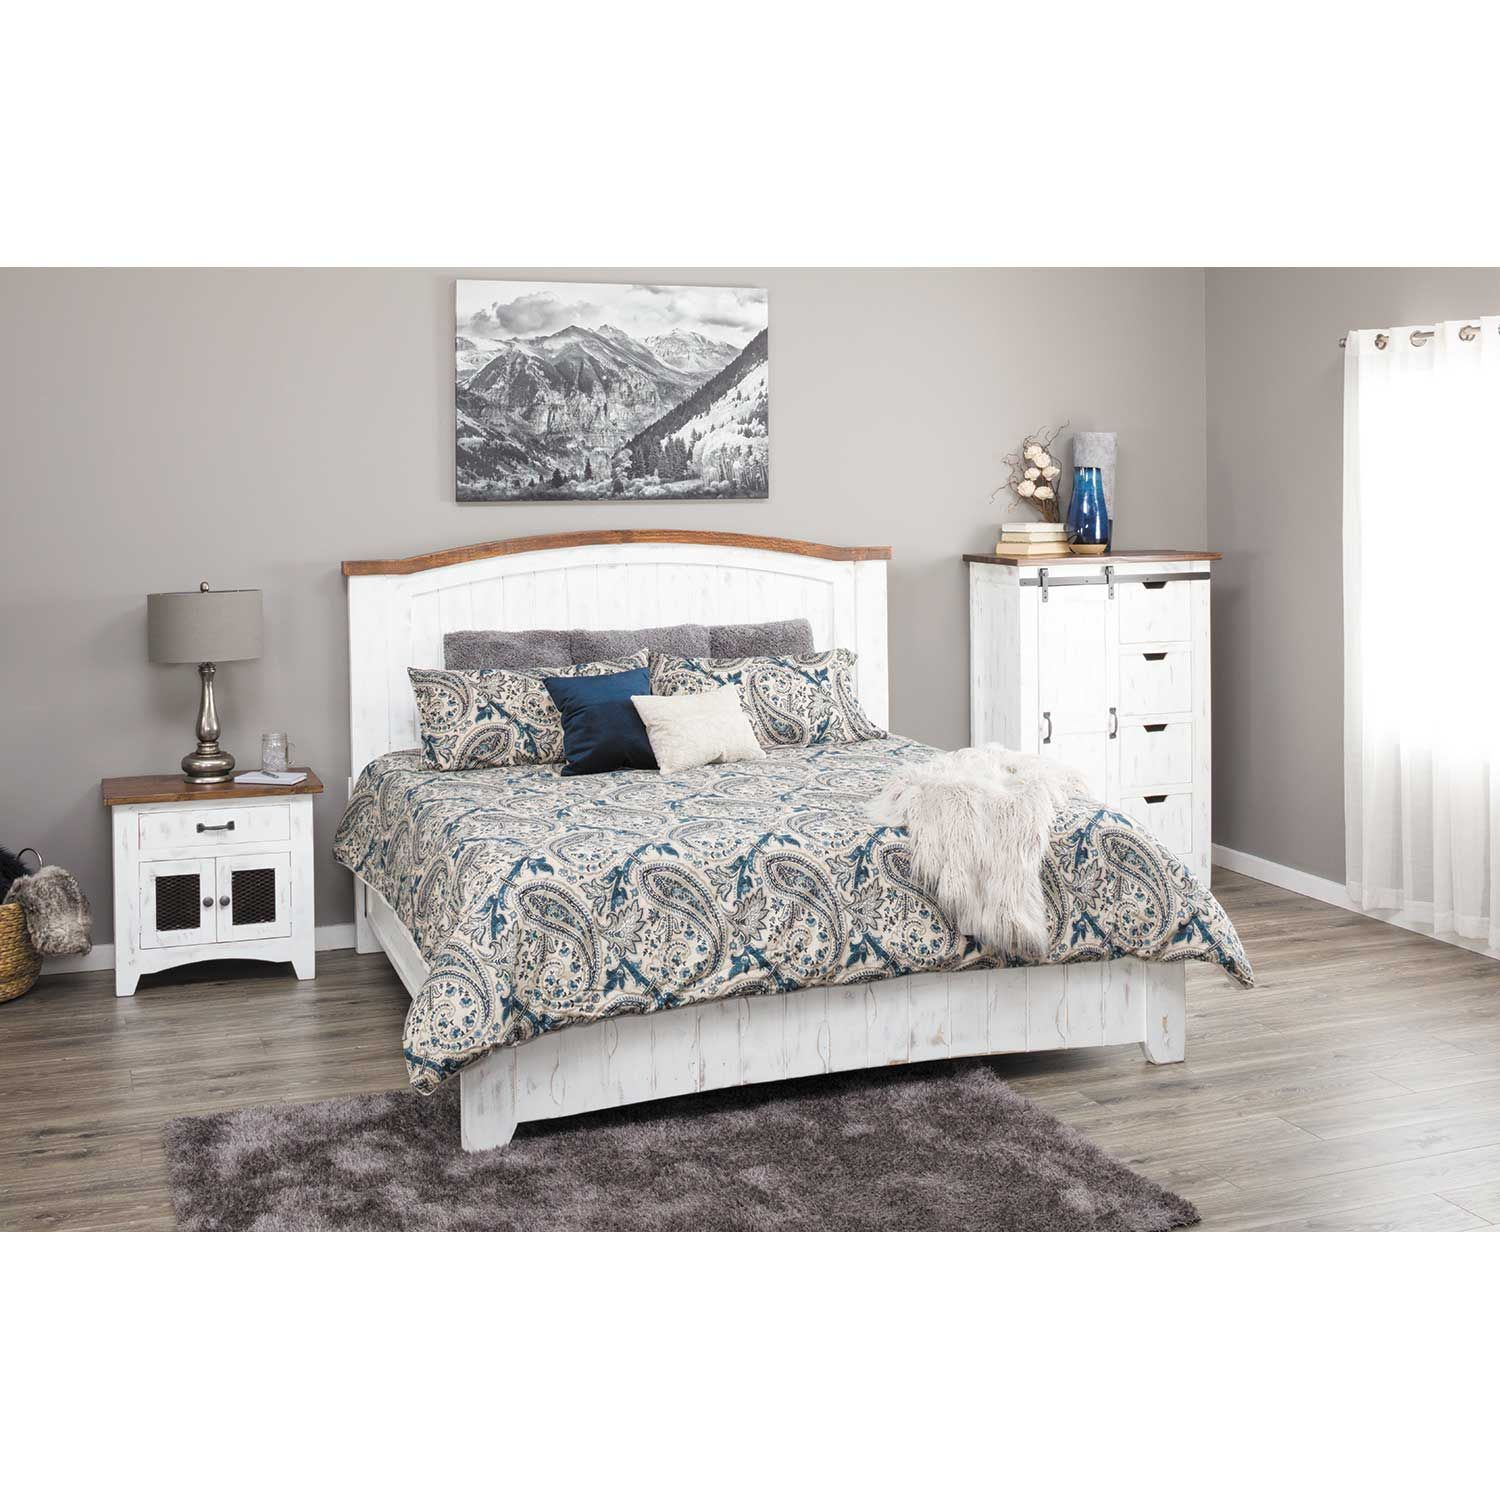 pueblo white 5 piece bedroom set ifd360q dsr mir ntst chest artisan home by ifd afw. Black Bedroom Furniture Sets. Home Design Ideas